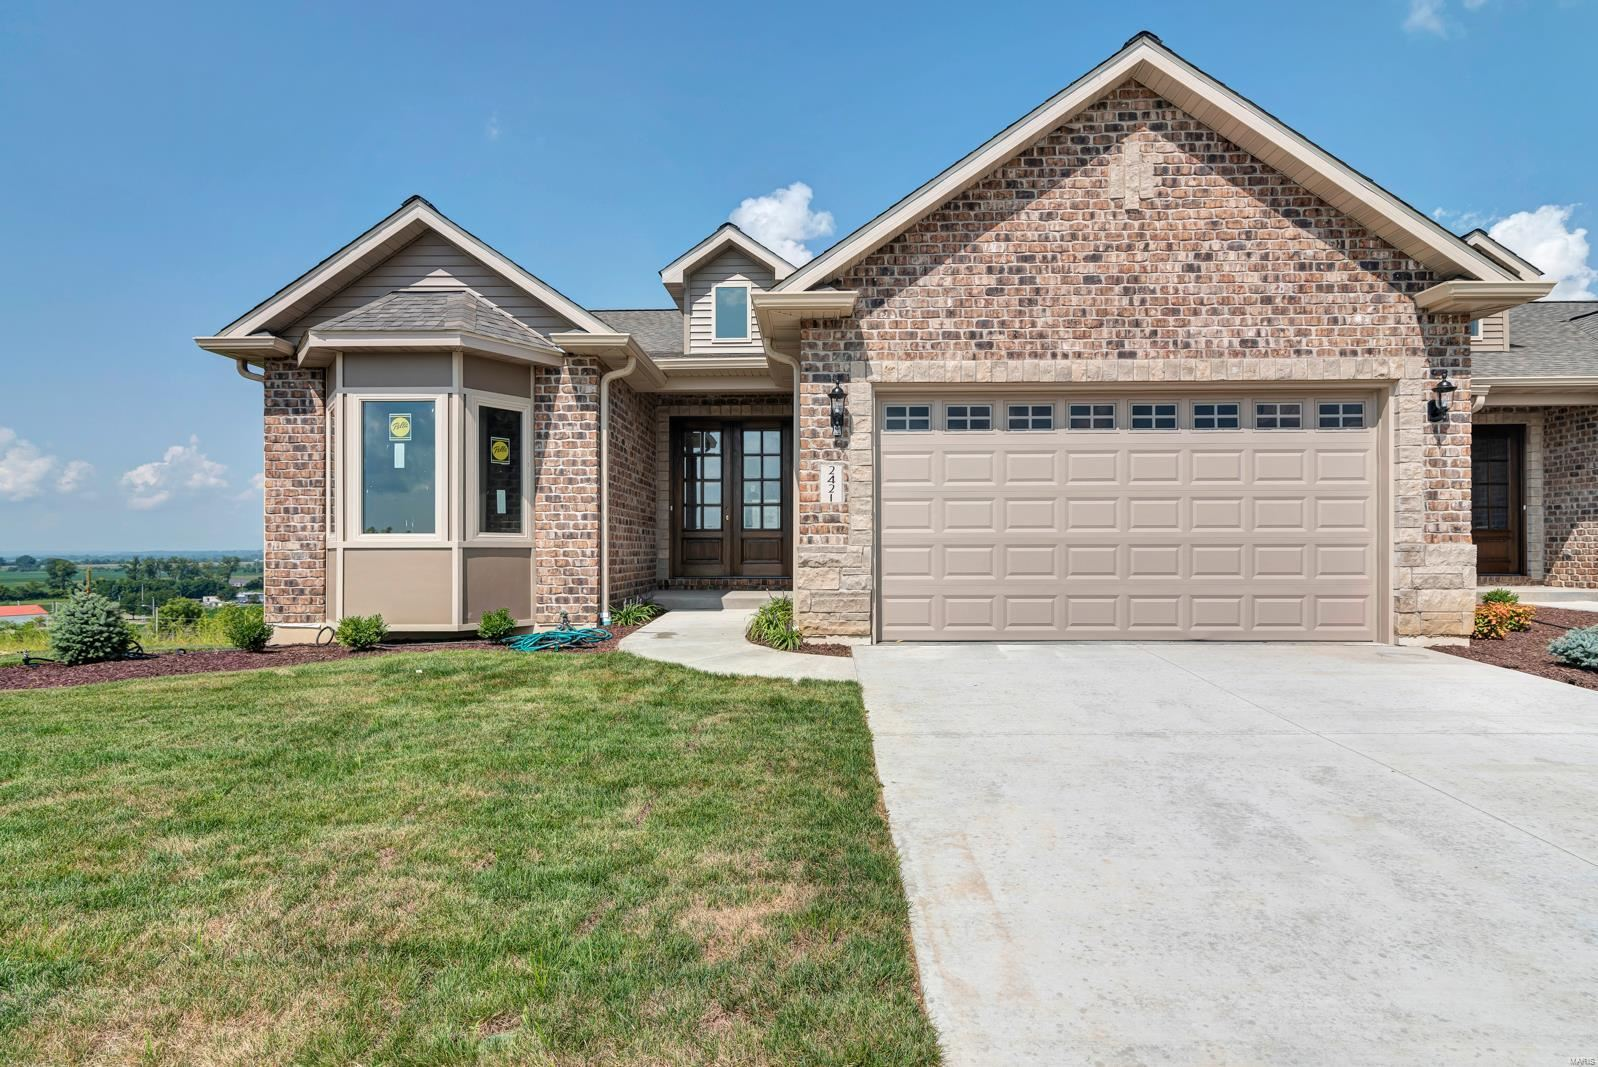 2421 Sunset Ridge, Columbia, IL 62236 - MLS#: 19057070